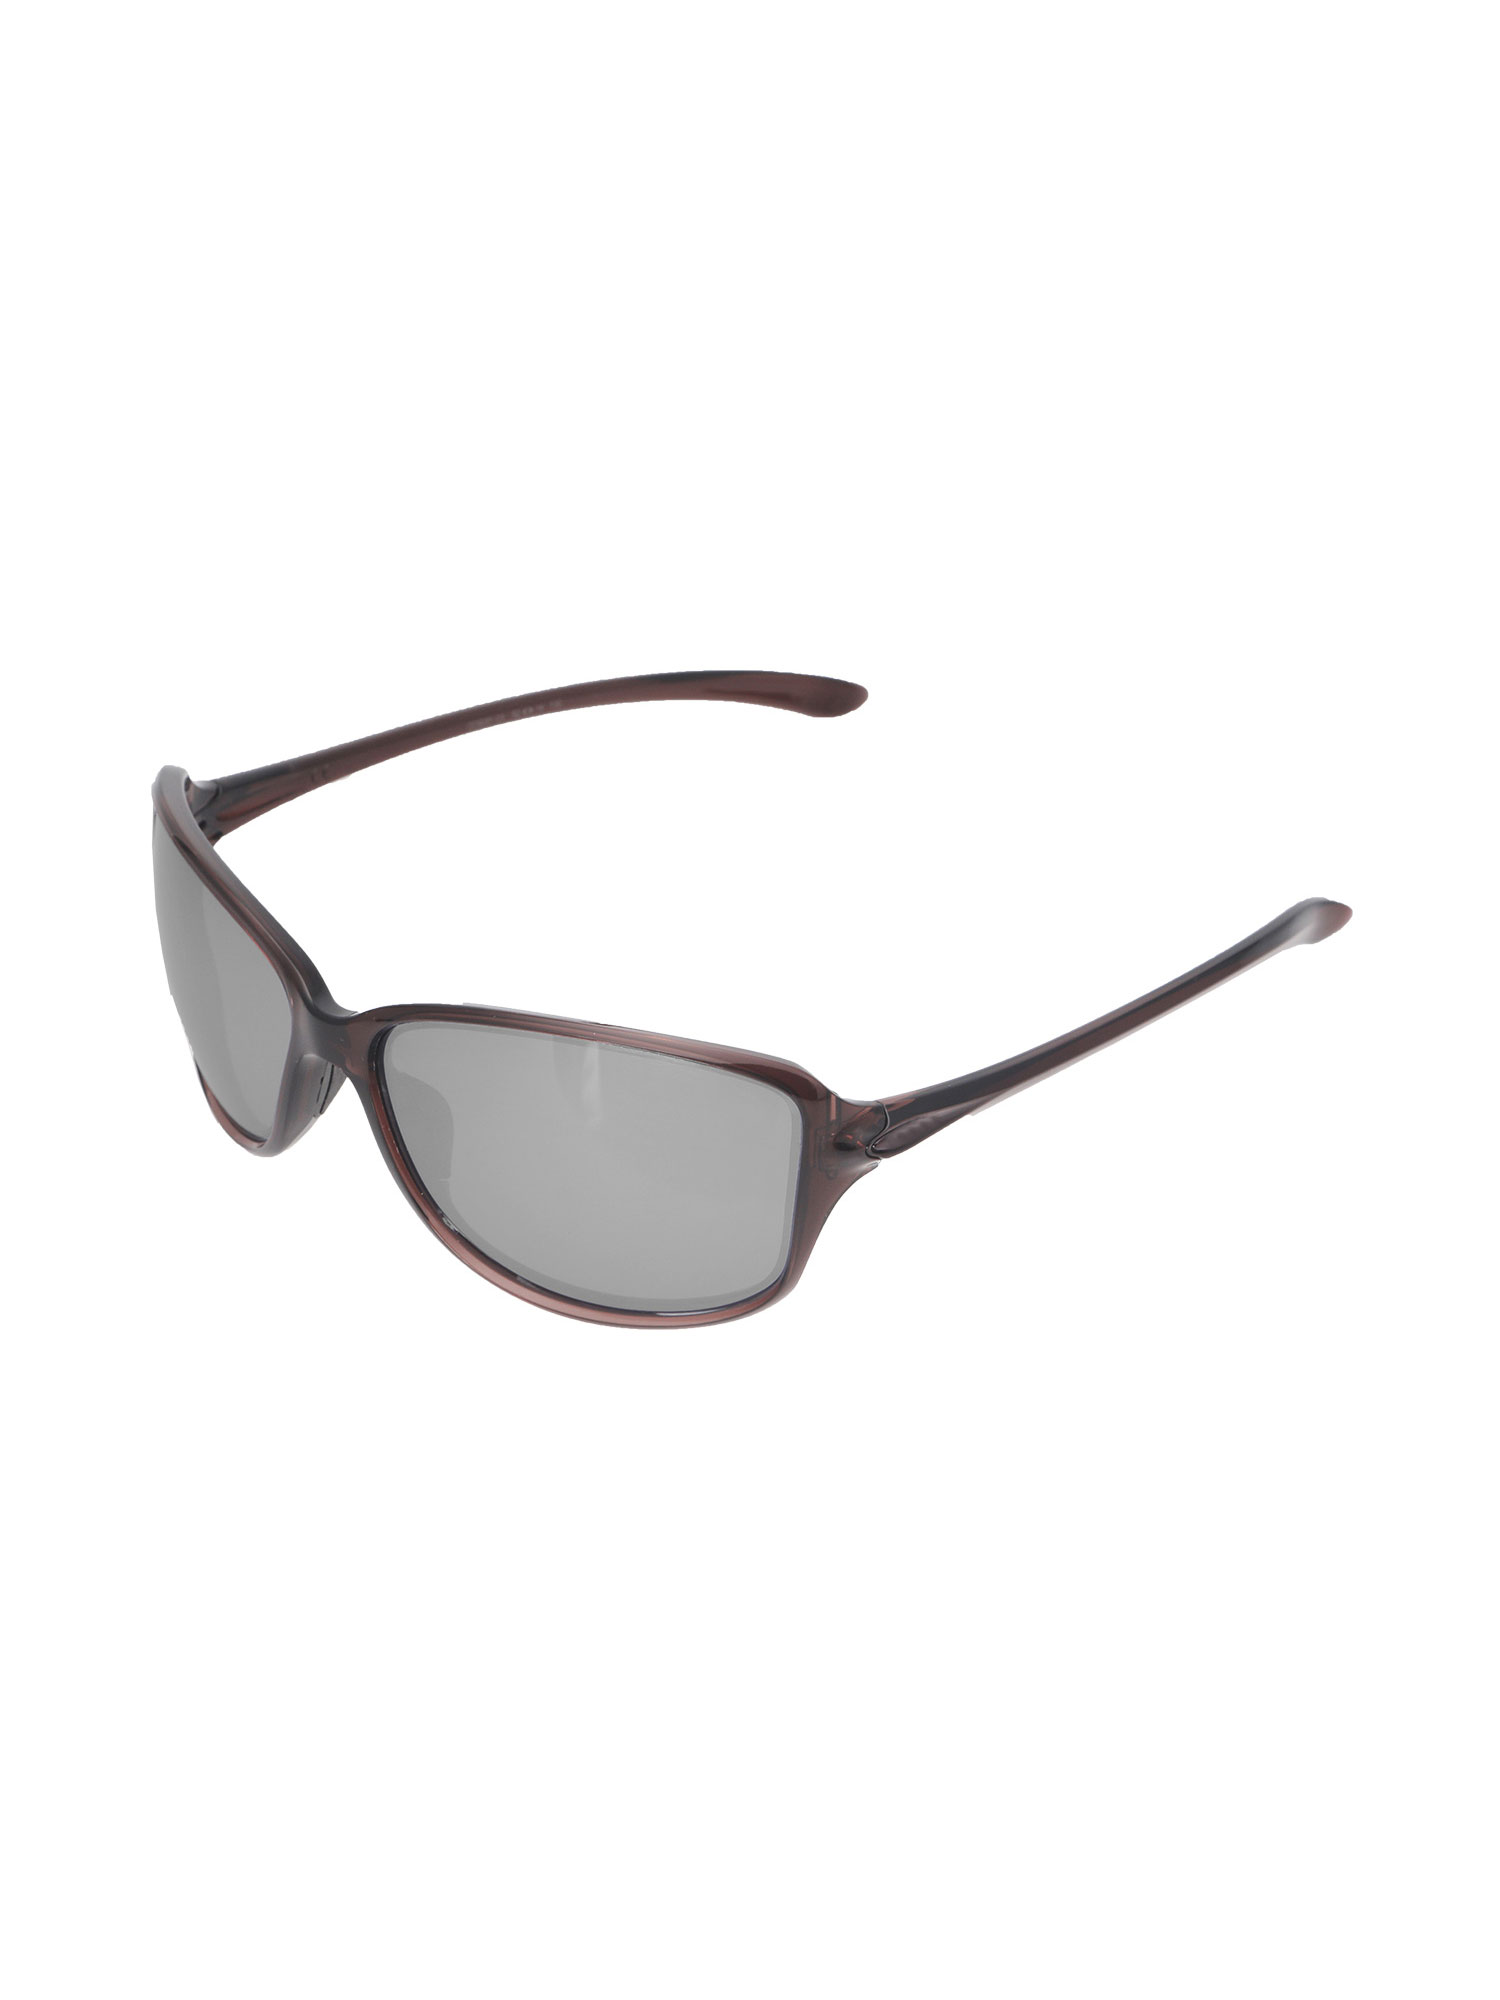 8951c900e7f92 Walleva Titanium Polarized Replacement Lenses for Oakley Cohort Sunglasses  - Walmart.com